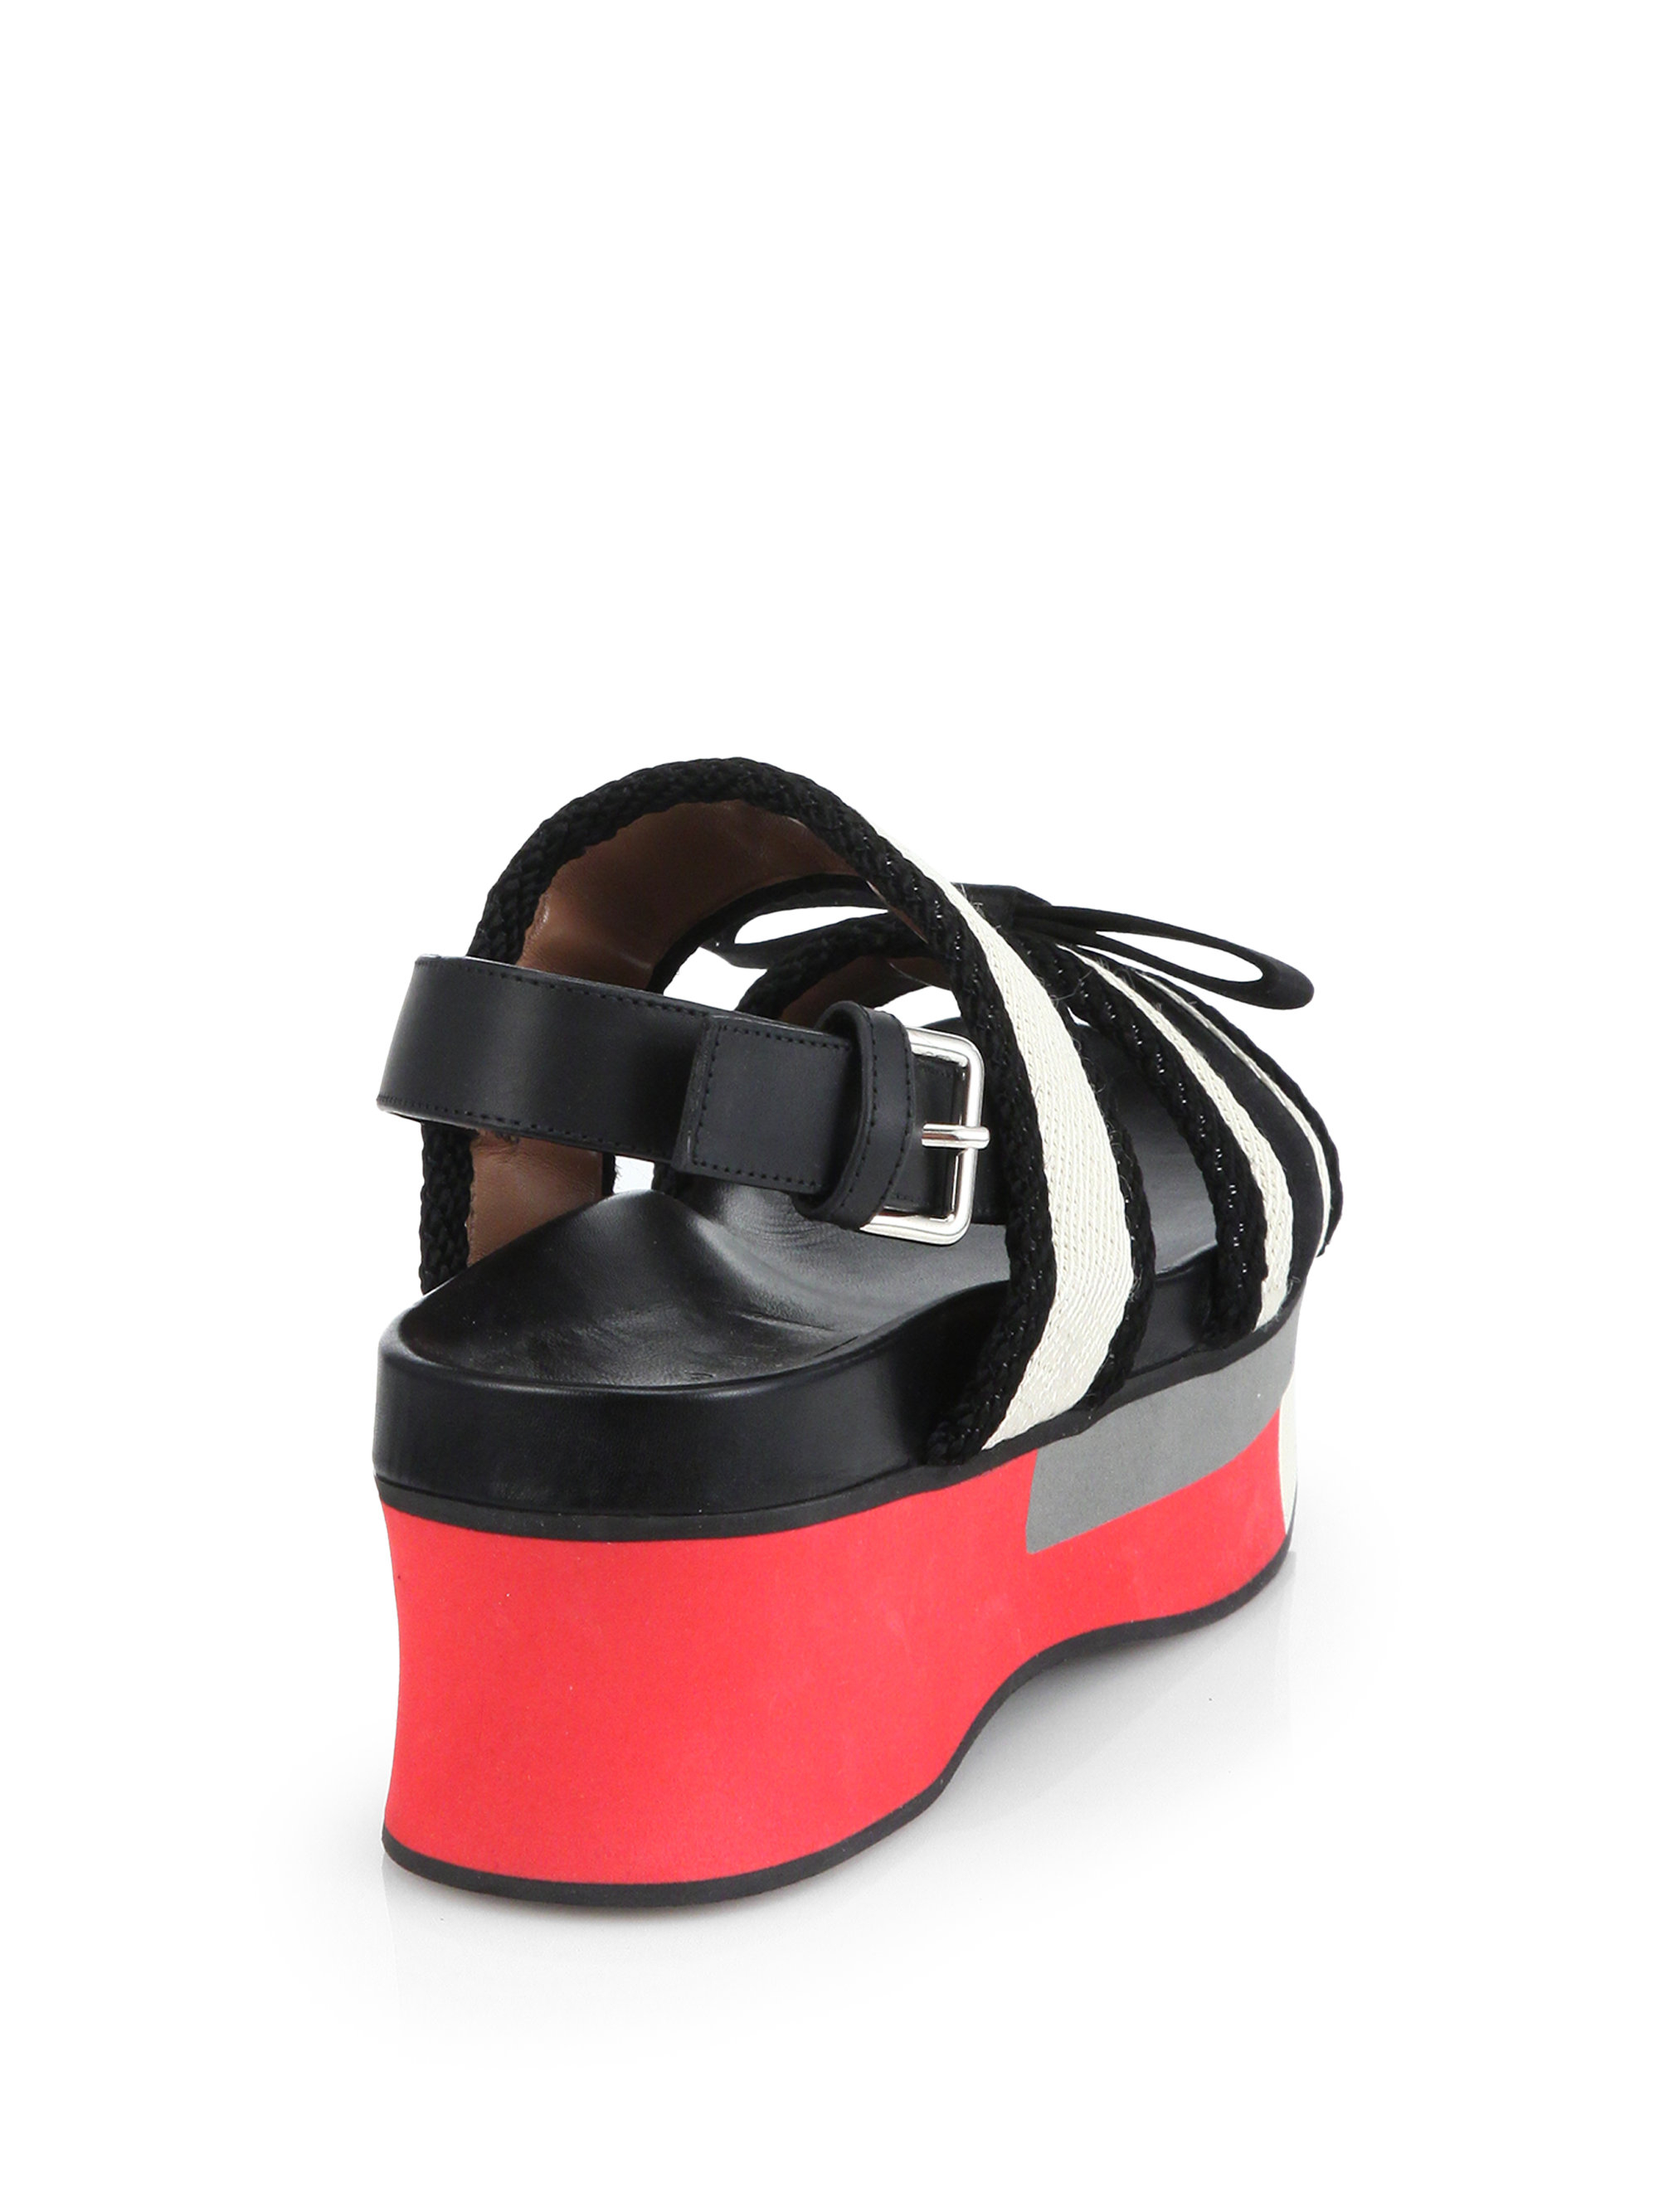 92cdf563c6 Marni Leather & Woven Bow Double-strap Platform Sandals in Black - Lyst